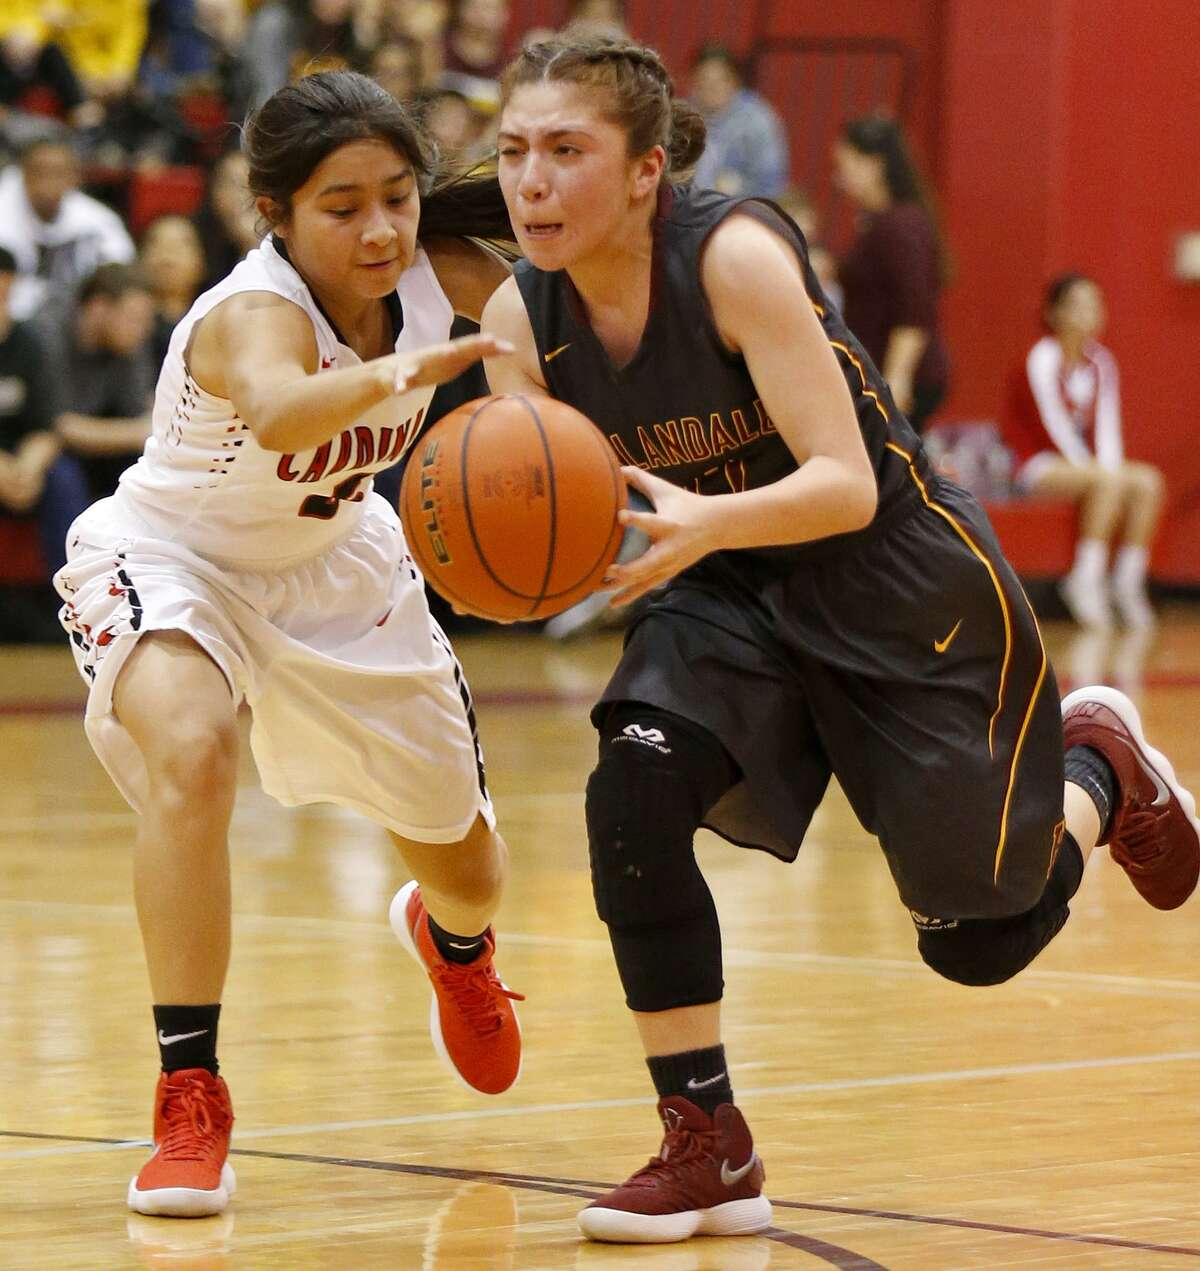 Harlandale's Serena Rodriguez drives around Southside's Marcelina Lopez during second half action held Friday Jan. 5, 2018 at Southside High School. Southside won 49-36.